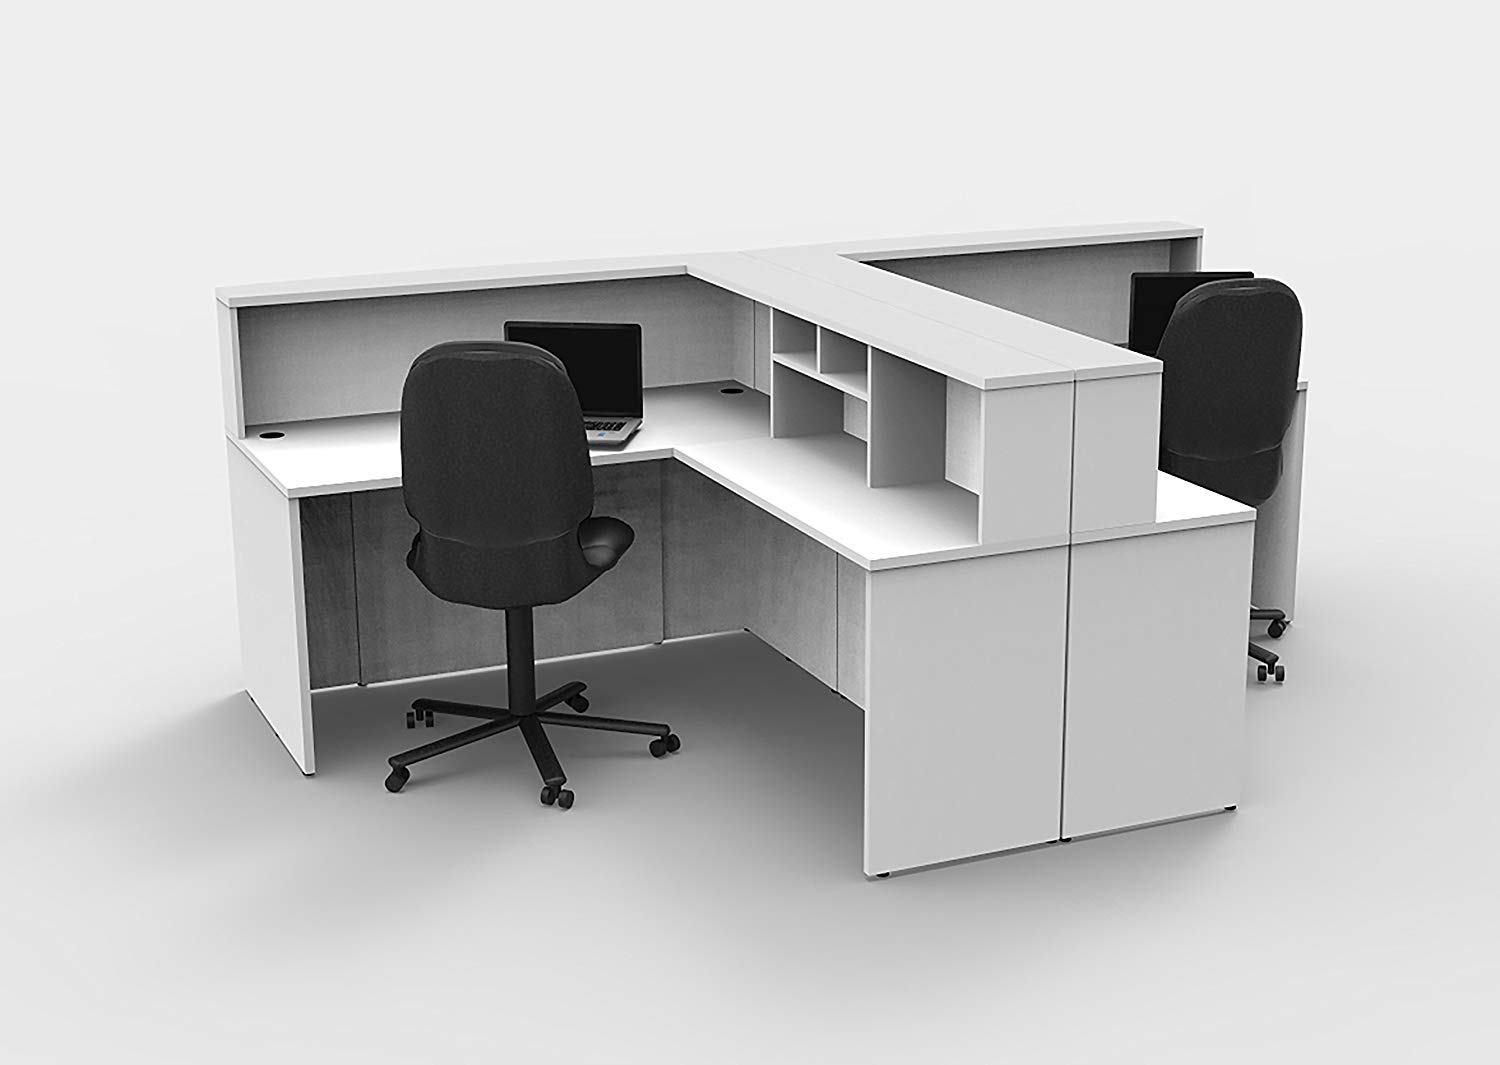 Office Reception Desk Reception Corner Collaboration Furniture Model 4305 8 Pc Group Contemporary White color. Update Your Spaces with Commercial Grade Reception Collaboration Furniture.